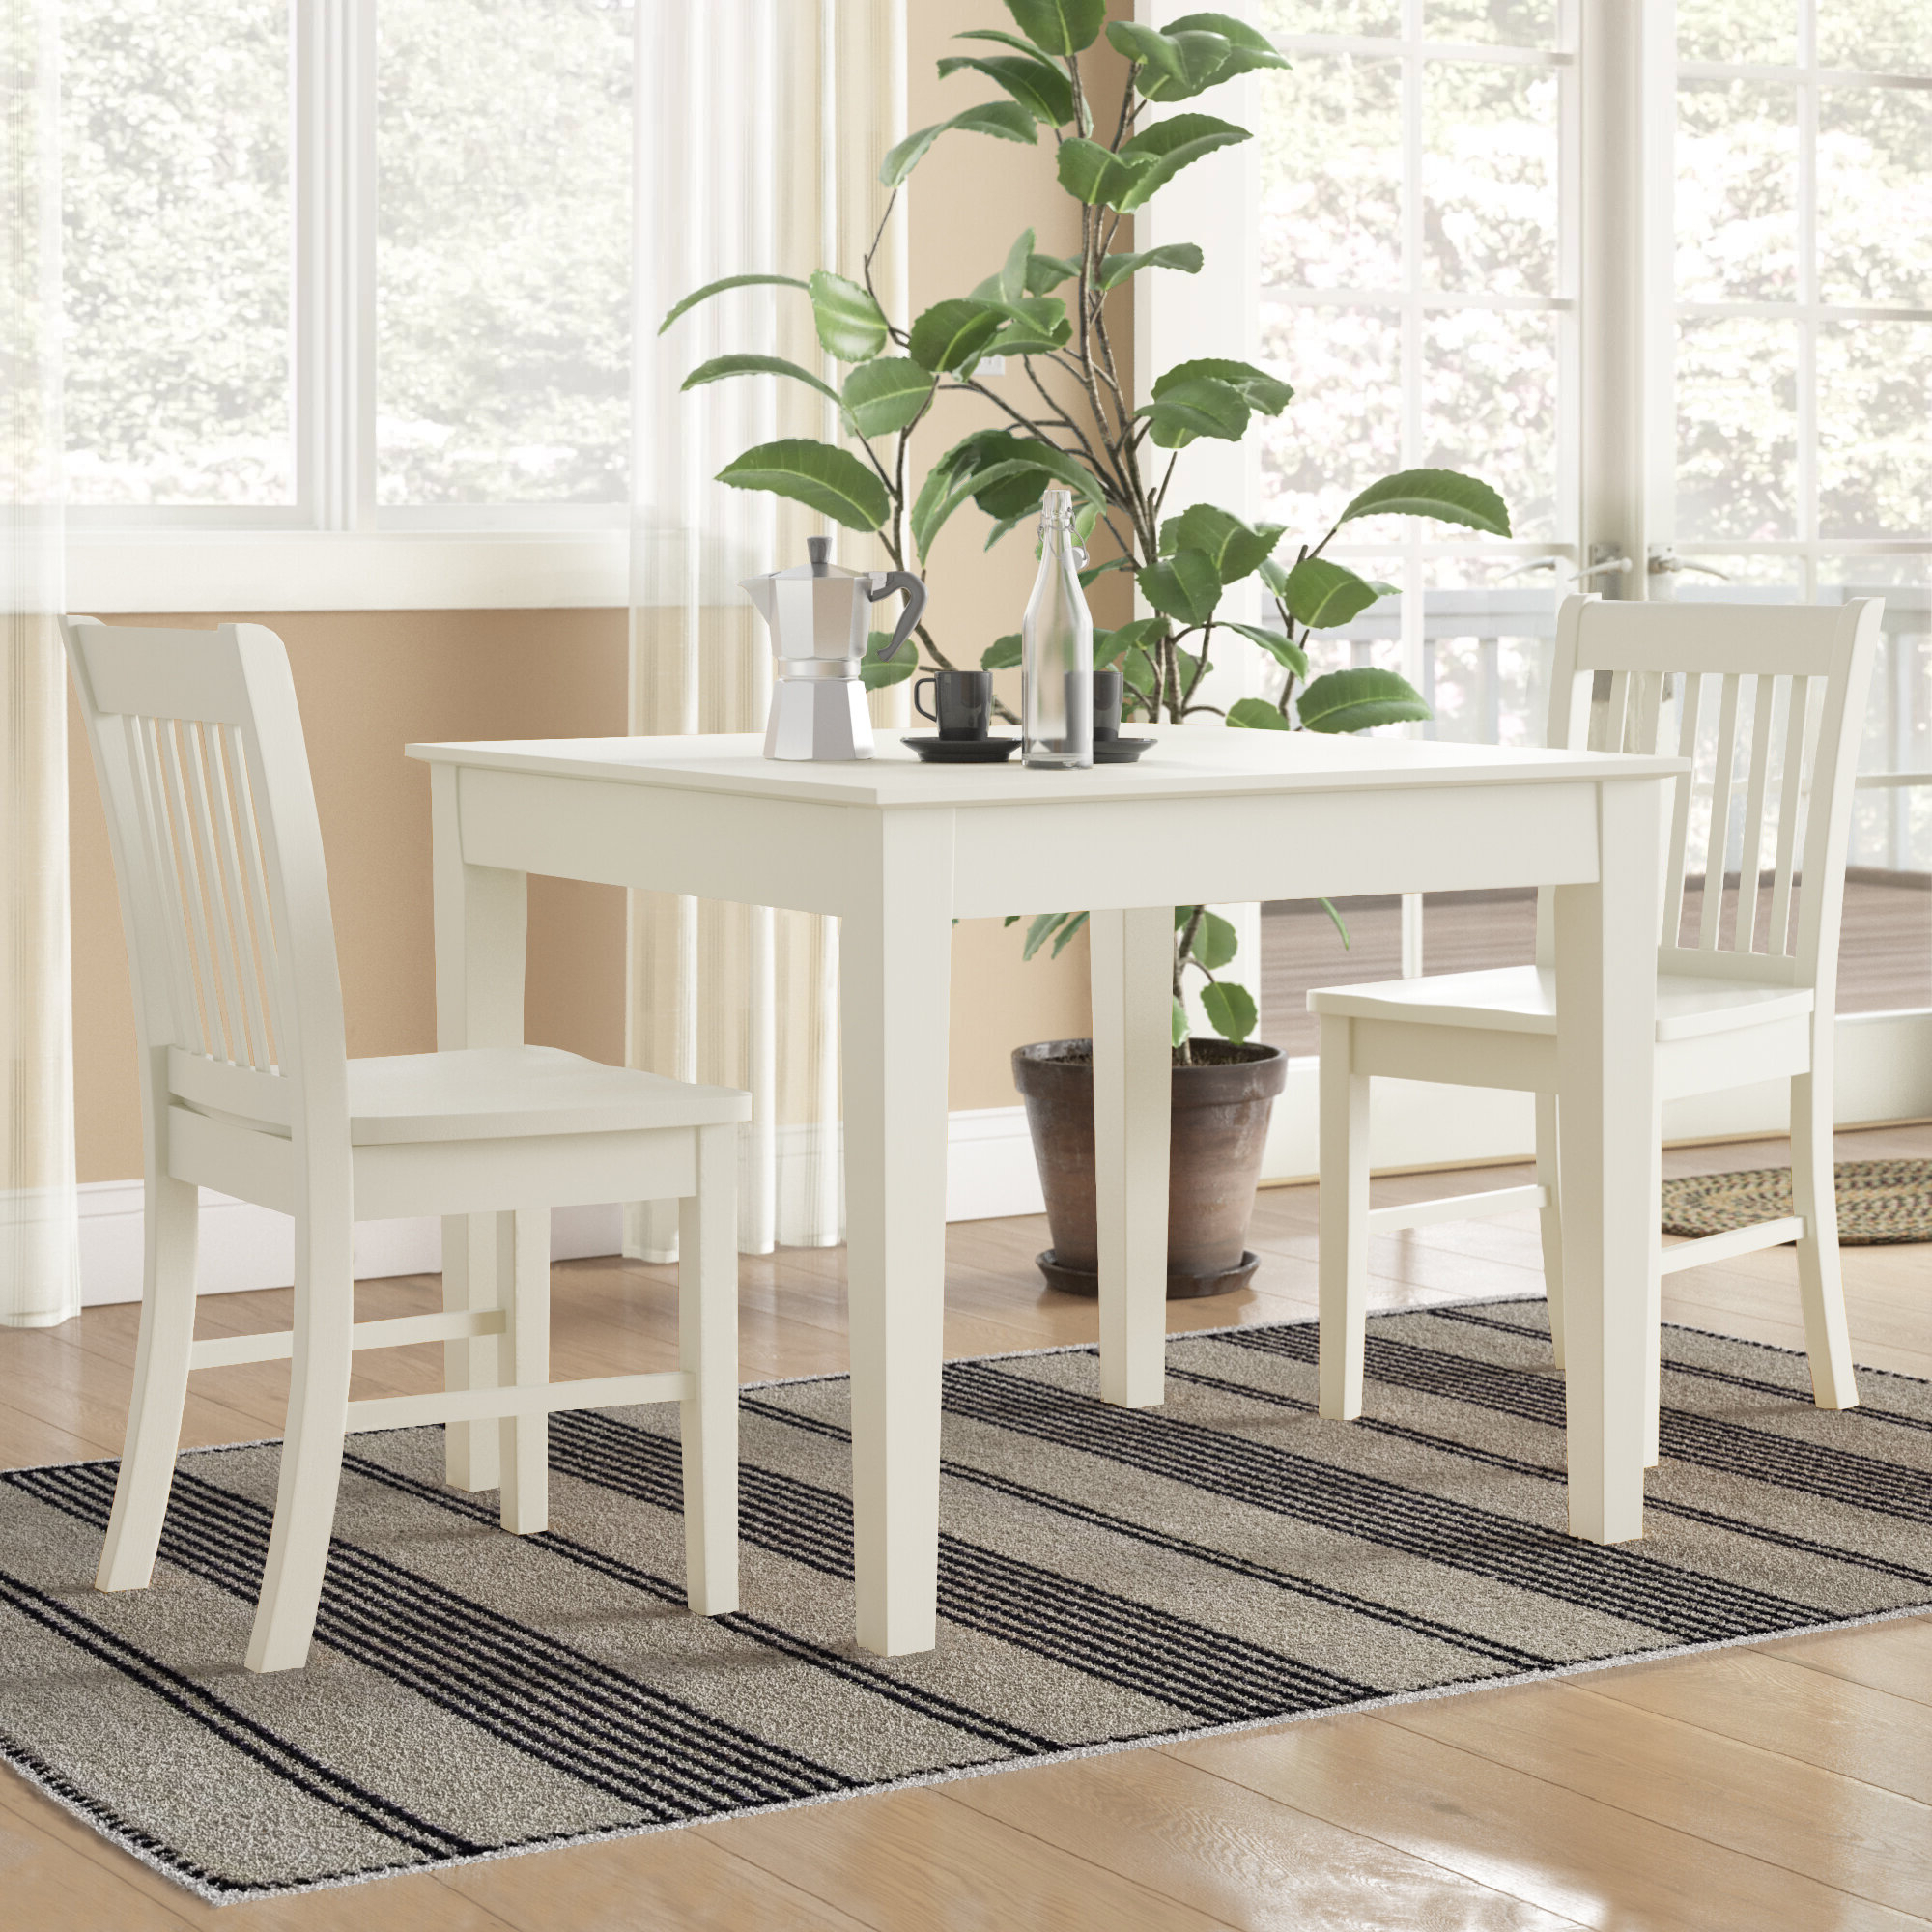 Yedinak 5 Piece Solid Wood Dining Sets in Most Recently Released Alcott Hill Cobleskill 3 Piece Dining Set & Reviews